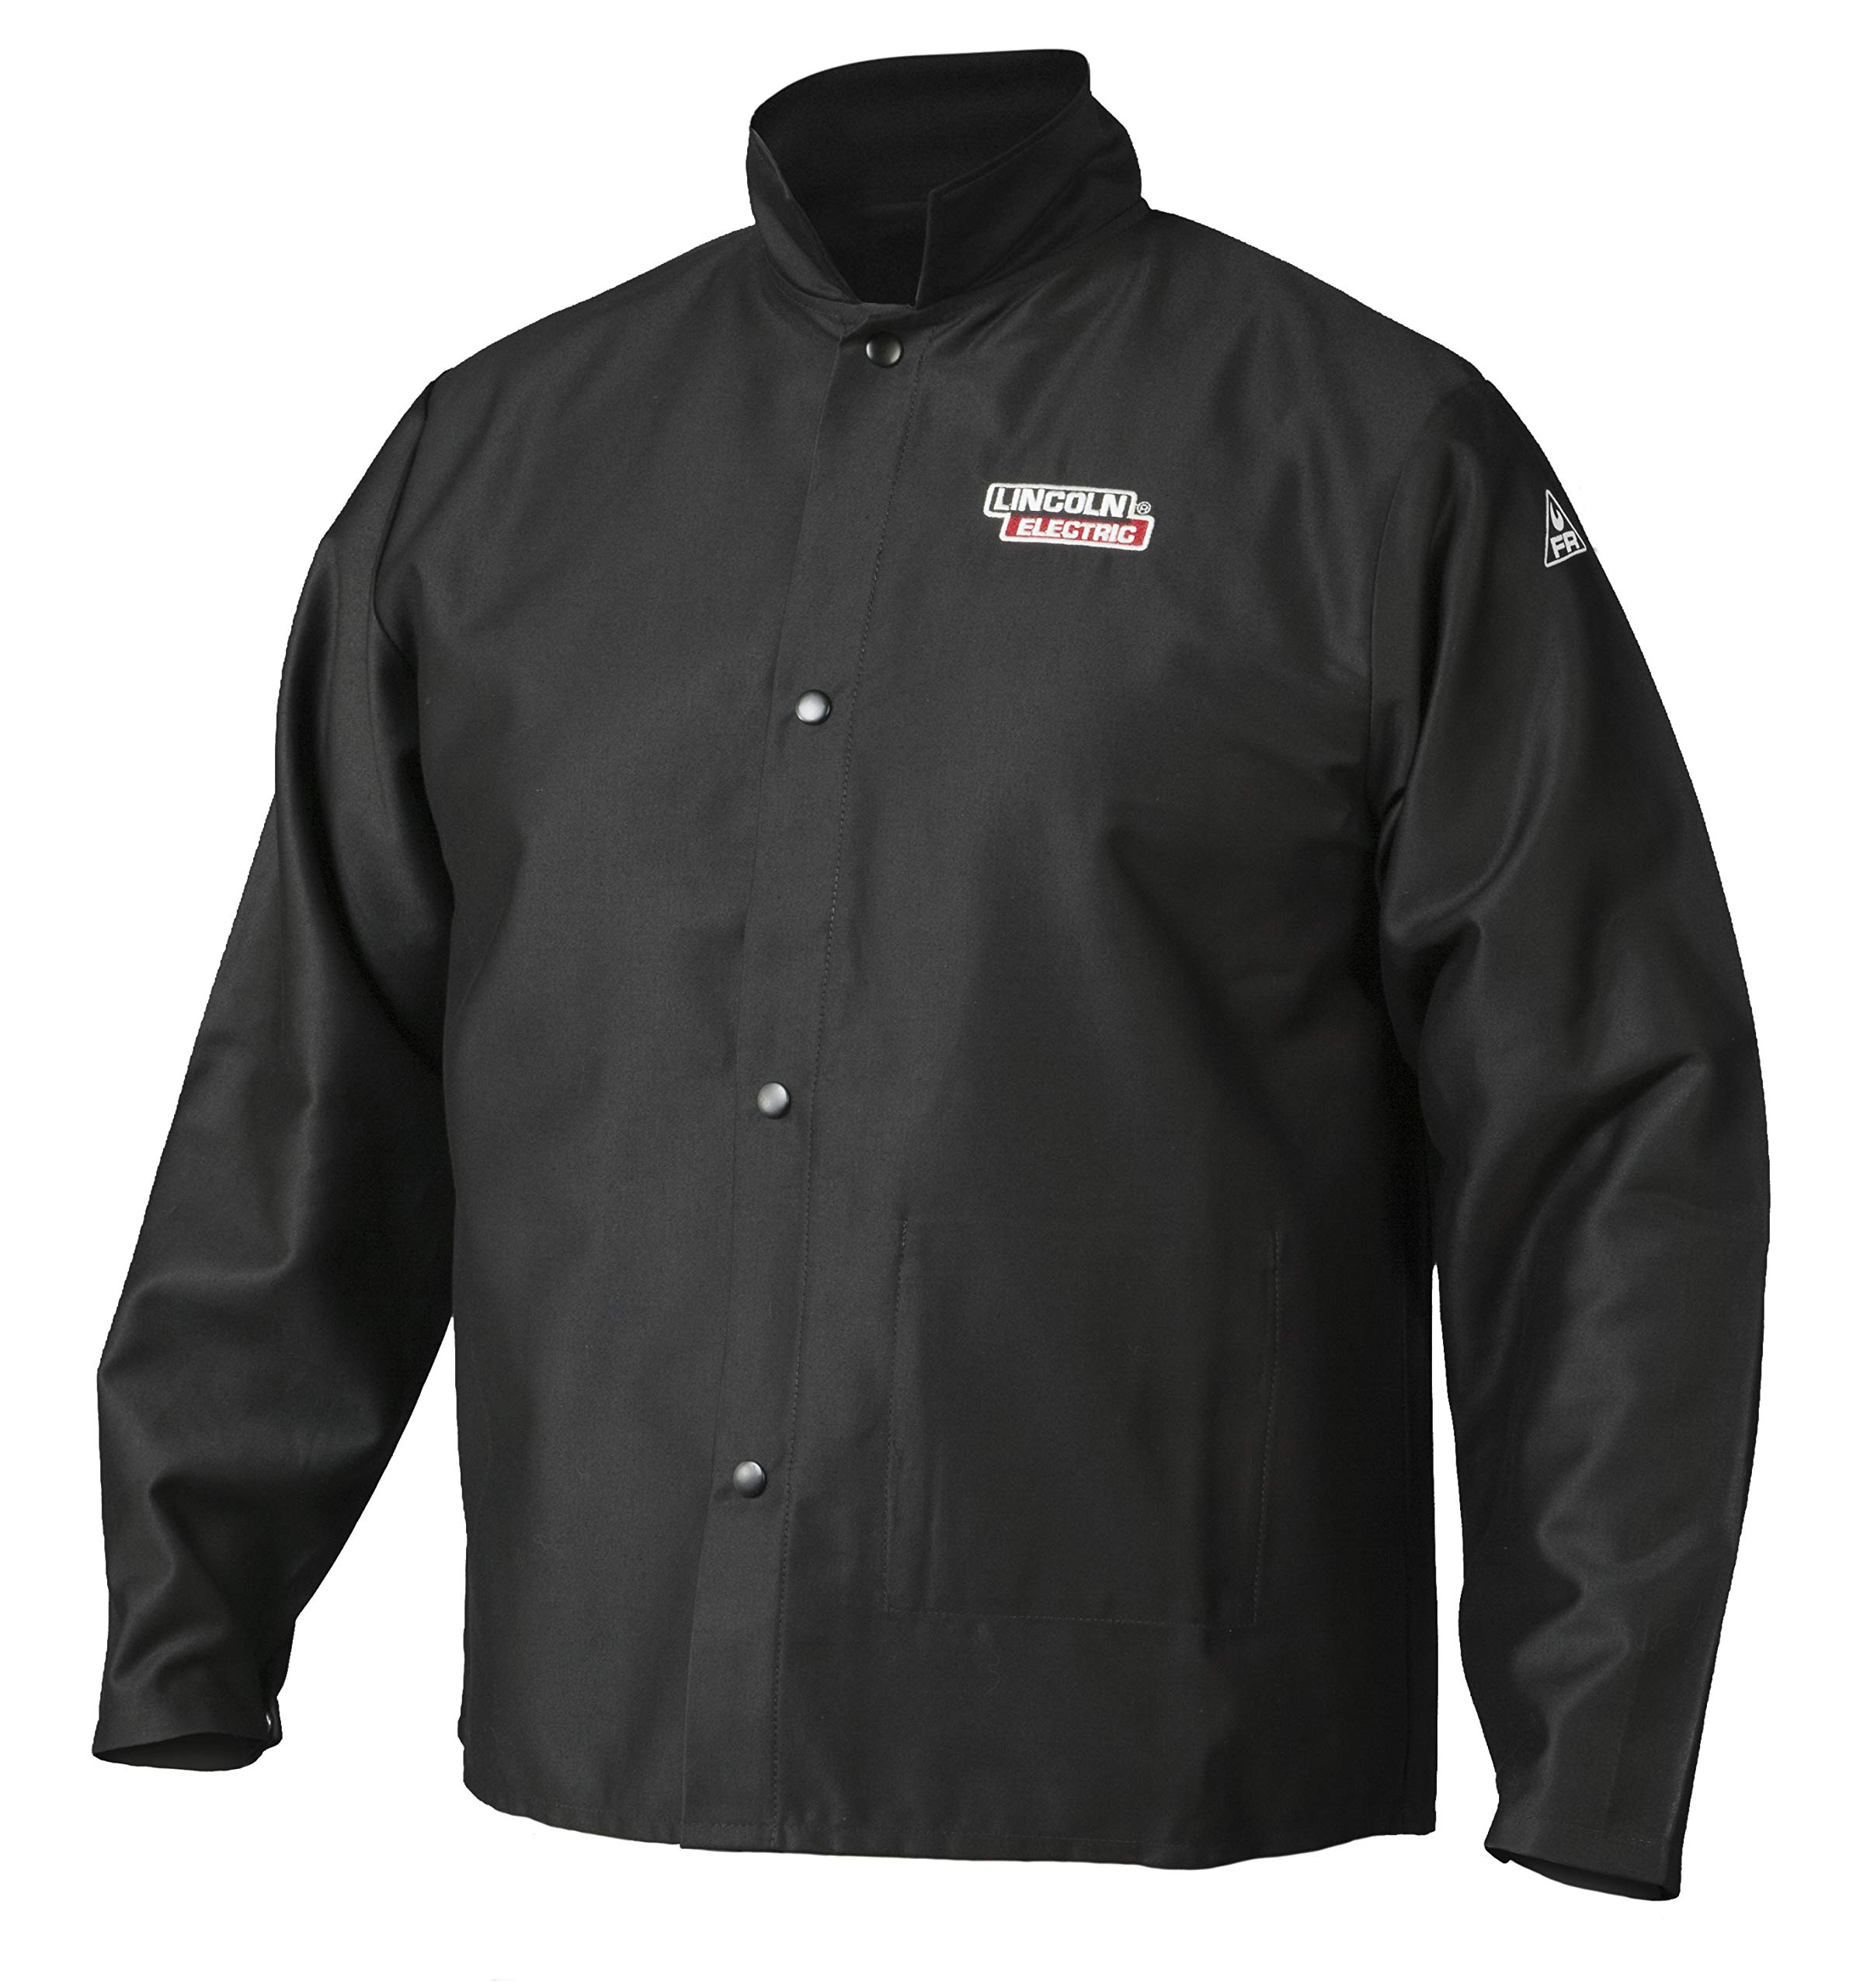 Lincoln Electric Premium Flame Resistant (FR) Cotton Welding Jacket | Comfortable | Black | XL | K2985-XL by Lincoln Electric